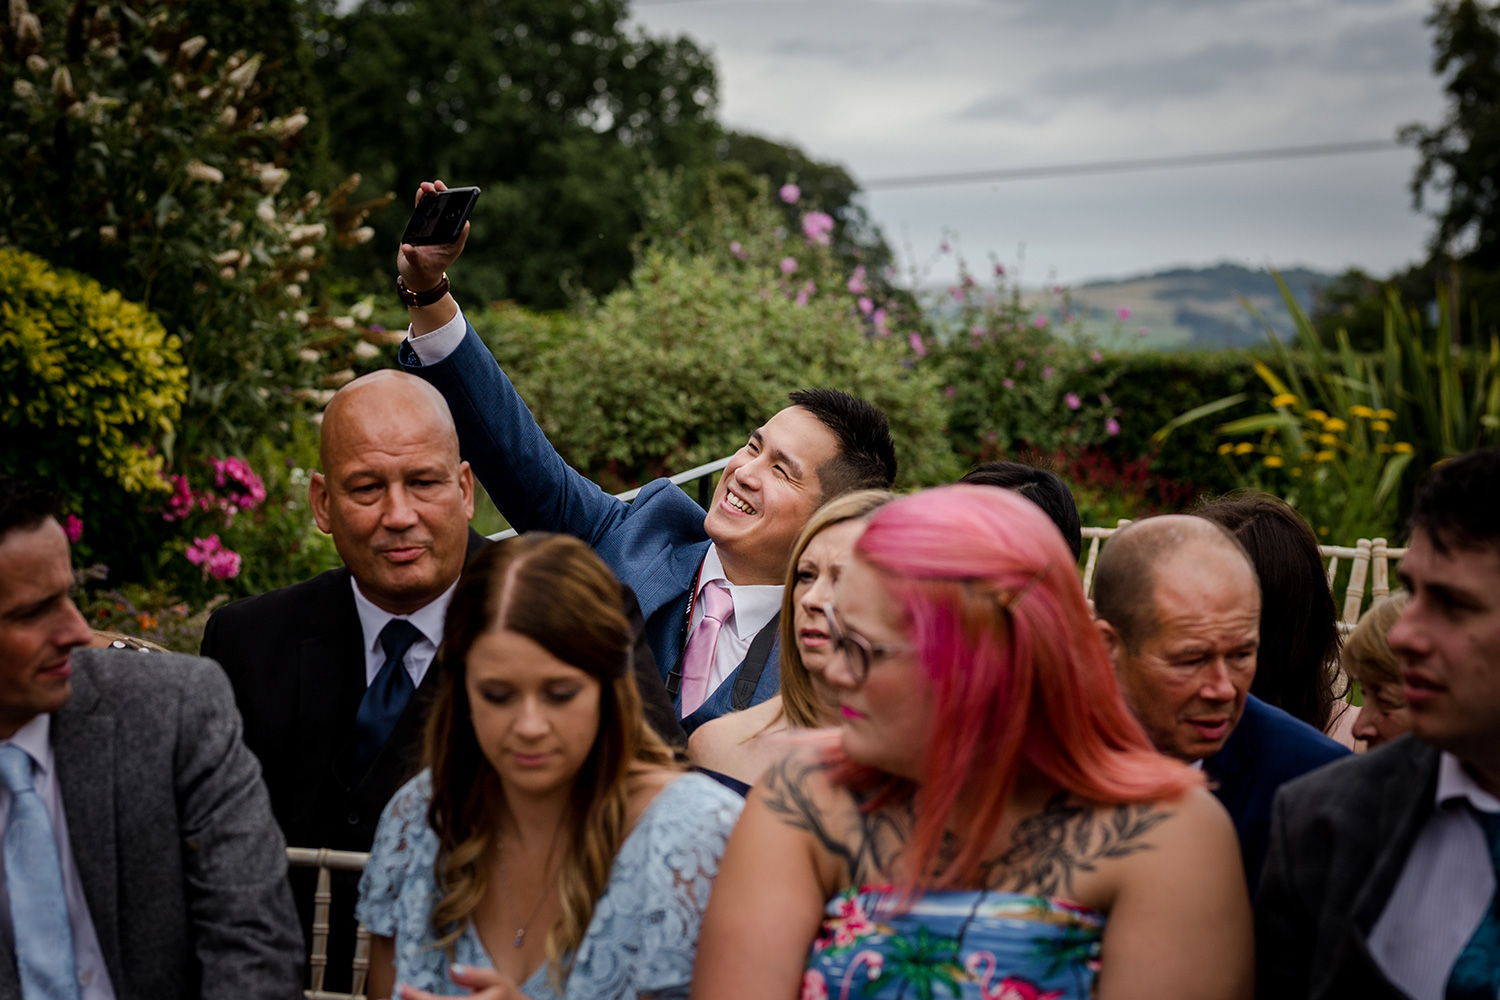 Wedding ceremony selfie